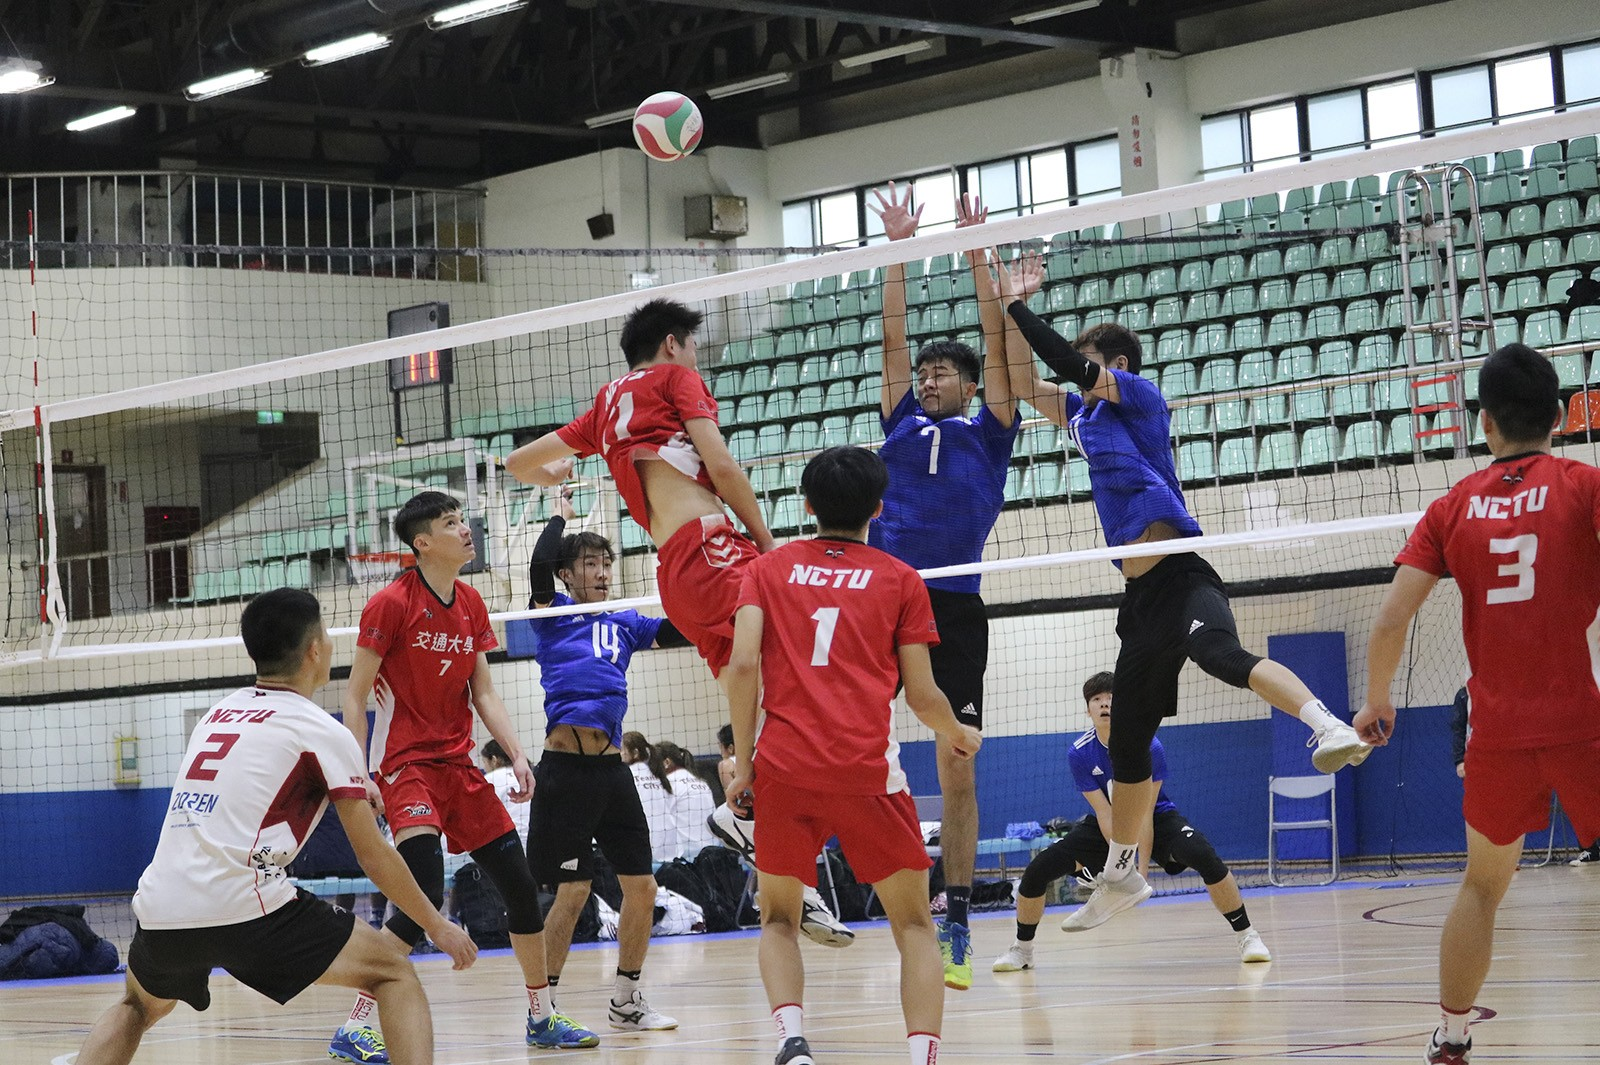 Men's teams from CityU (blue tops) and NCTU (red tops) compete in volleyball. (Photo credit: NCTU)